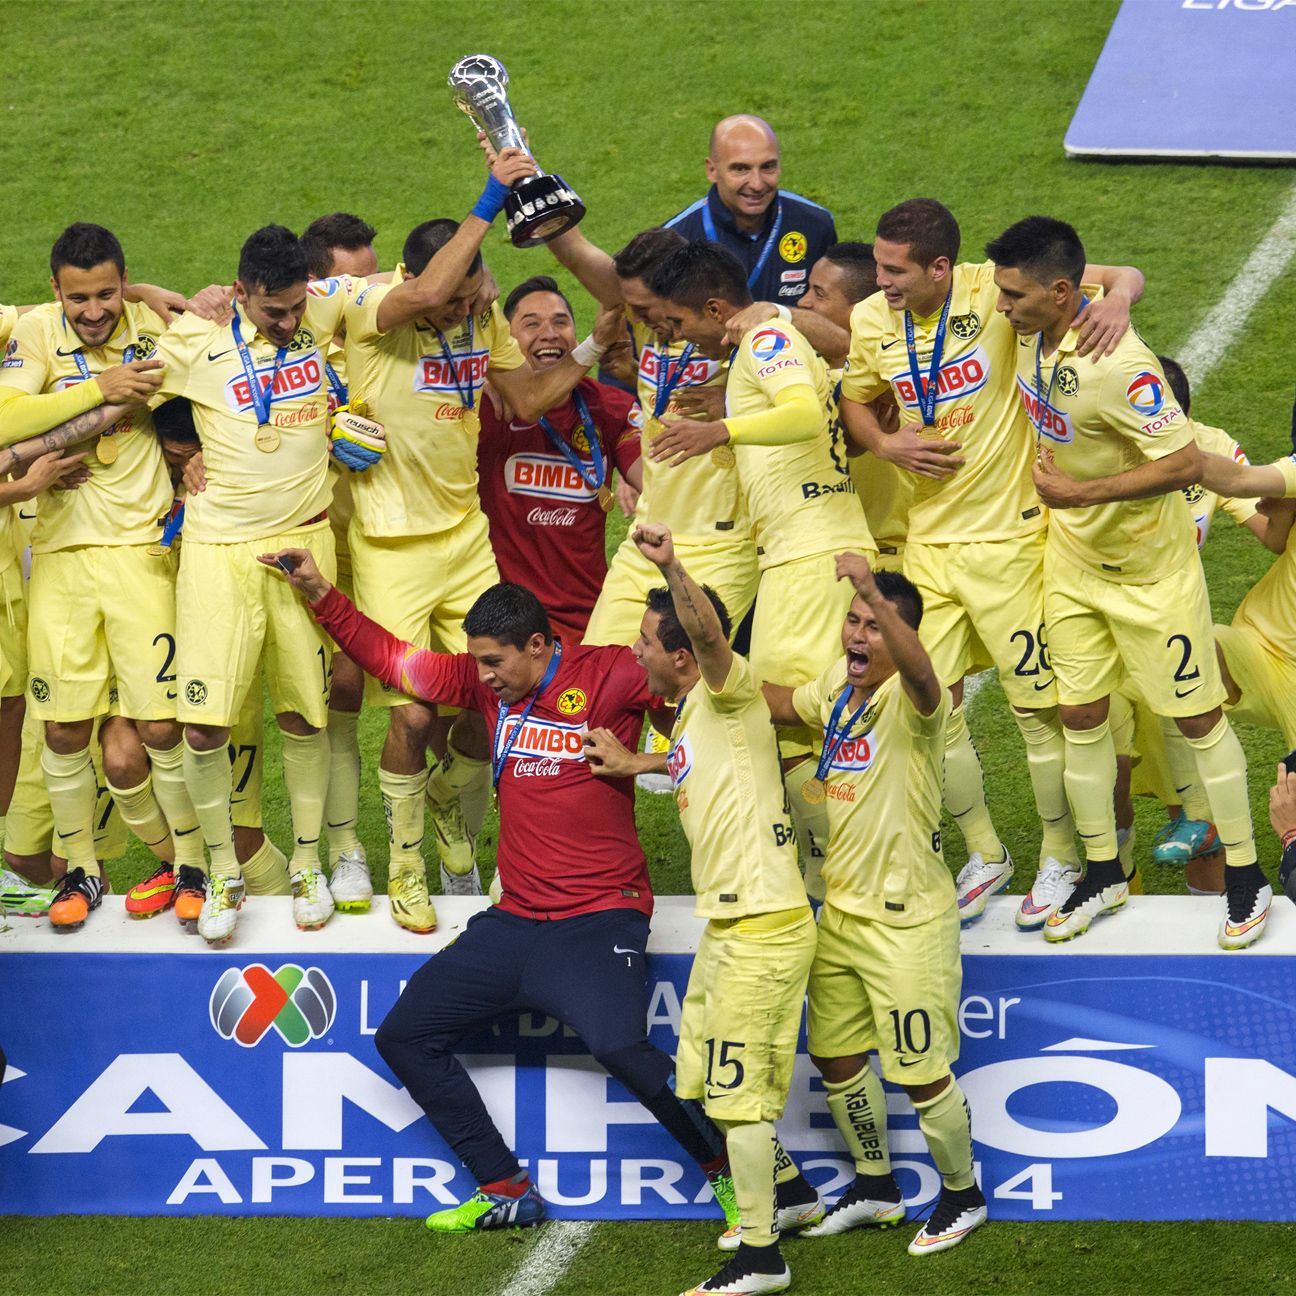 Club America will be seeking their third Liga MX title in six seasons when the Liguilla kicks off.